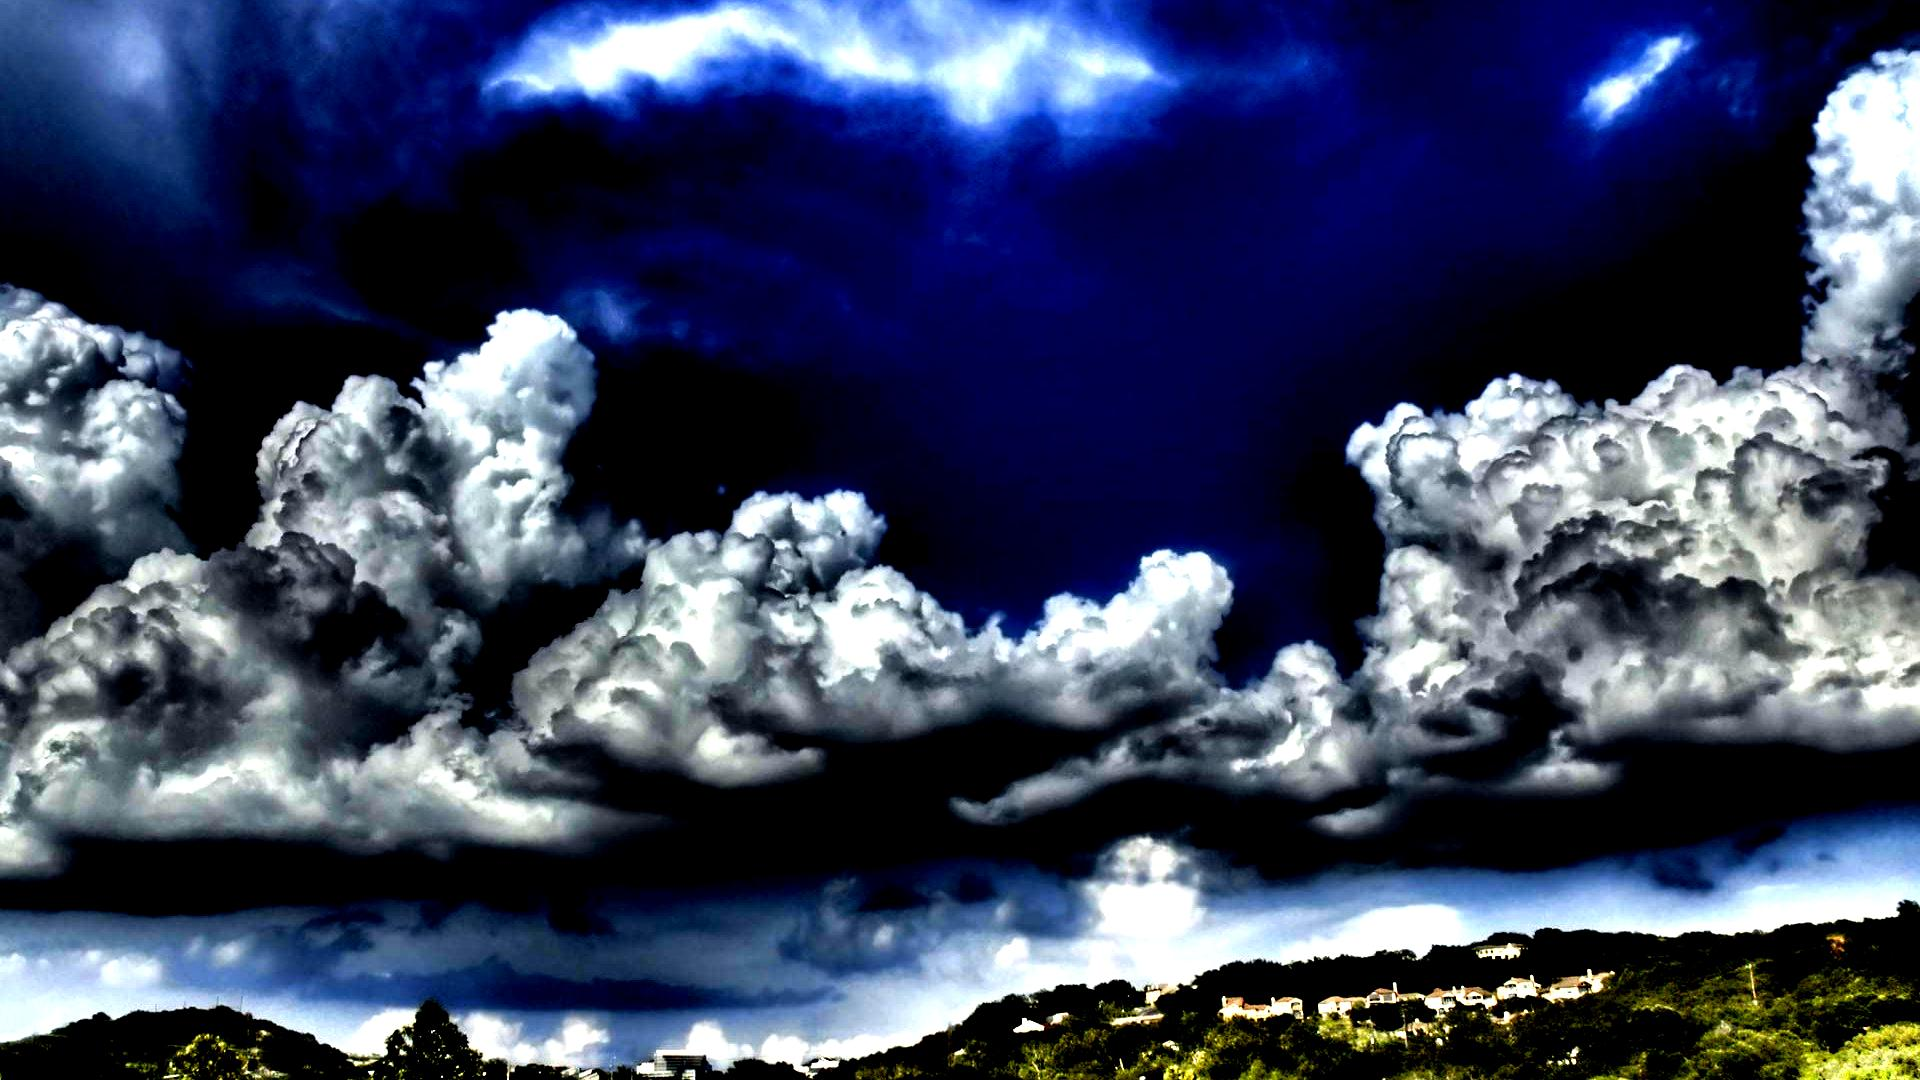 Superb Clouds Scape Hdr Town Mountains Sky hd wallpaper #1124122 169